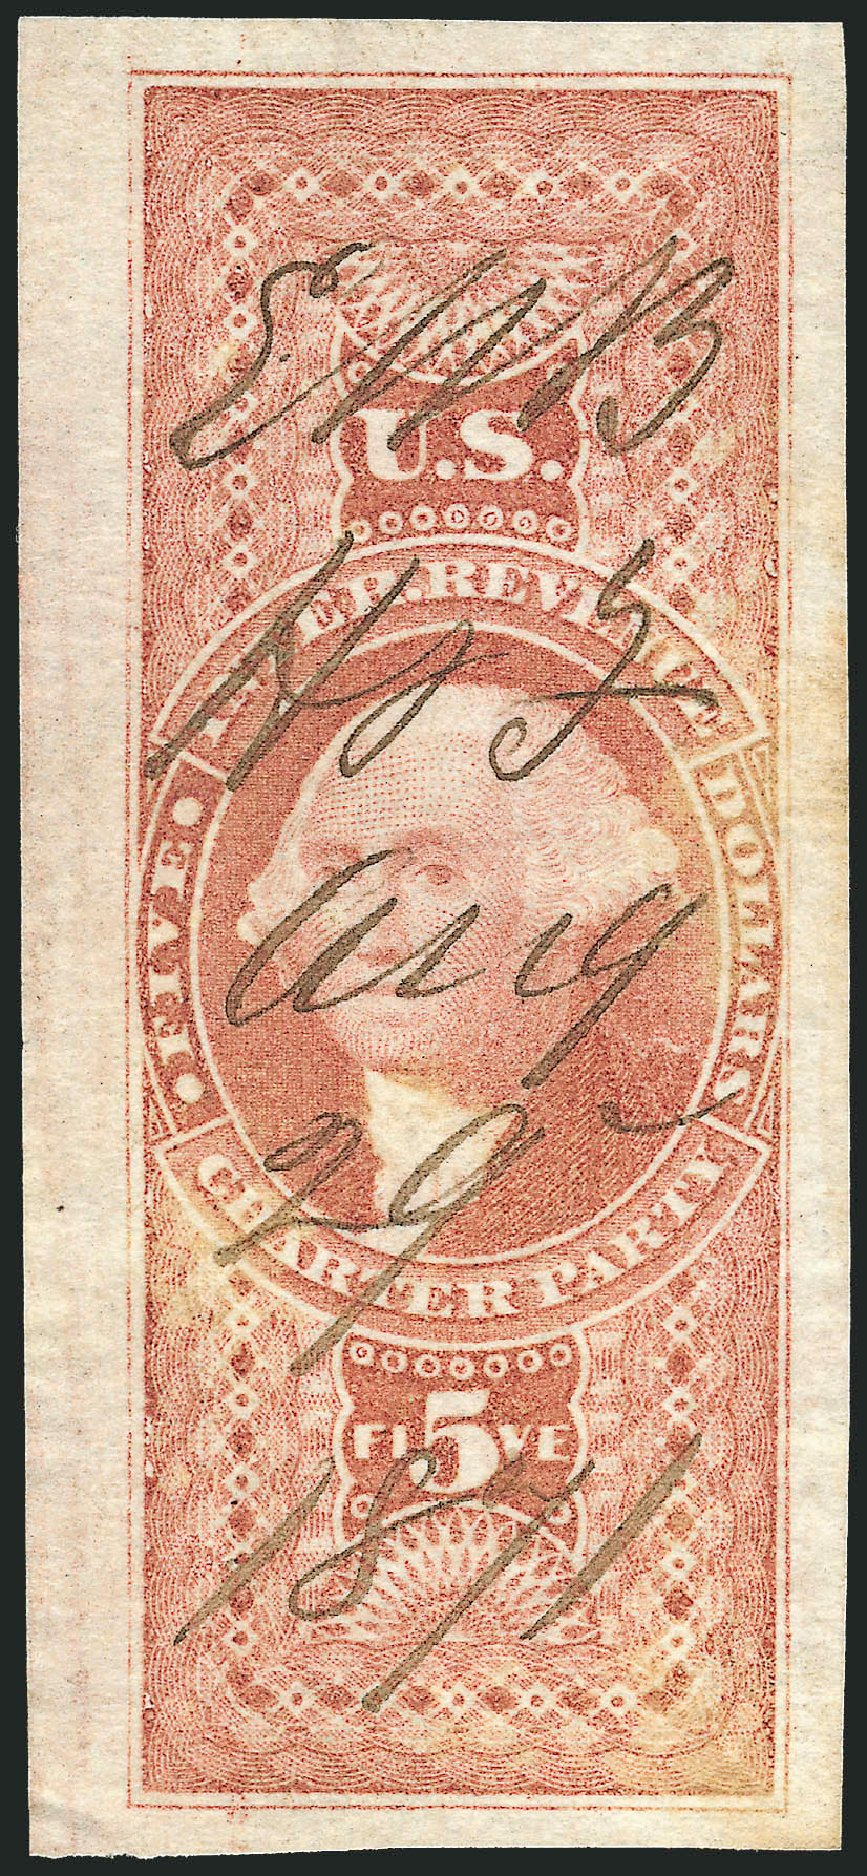 US Stamps Prices Scott Catalog #R88 - 1862 US$5.00 Revenue Charter Party. Robert Siegel Auction Galleries, Dec 2014, Sale 1089, Lot 254